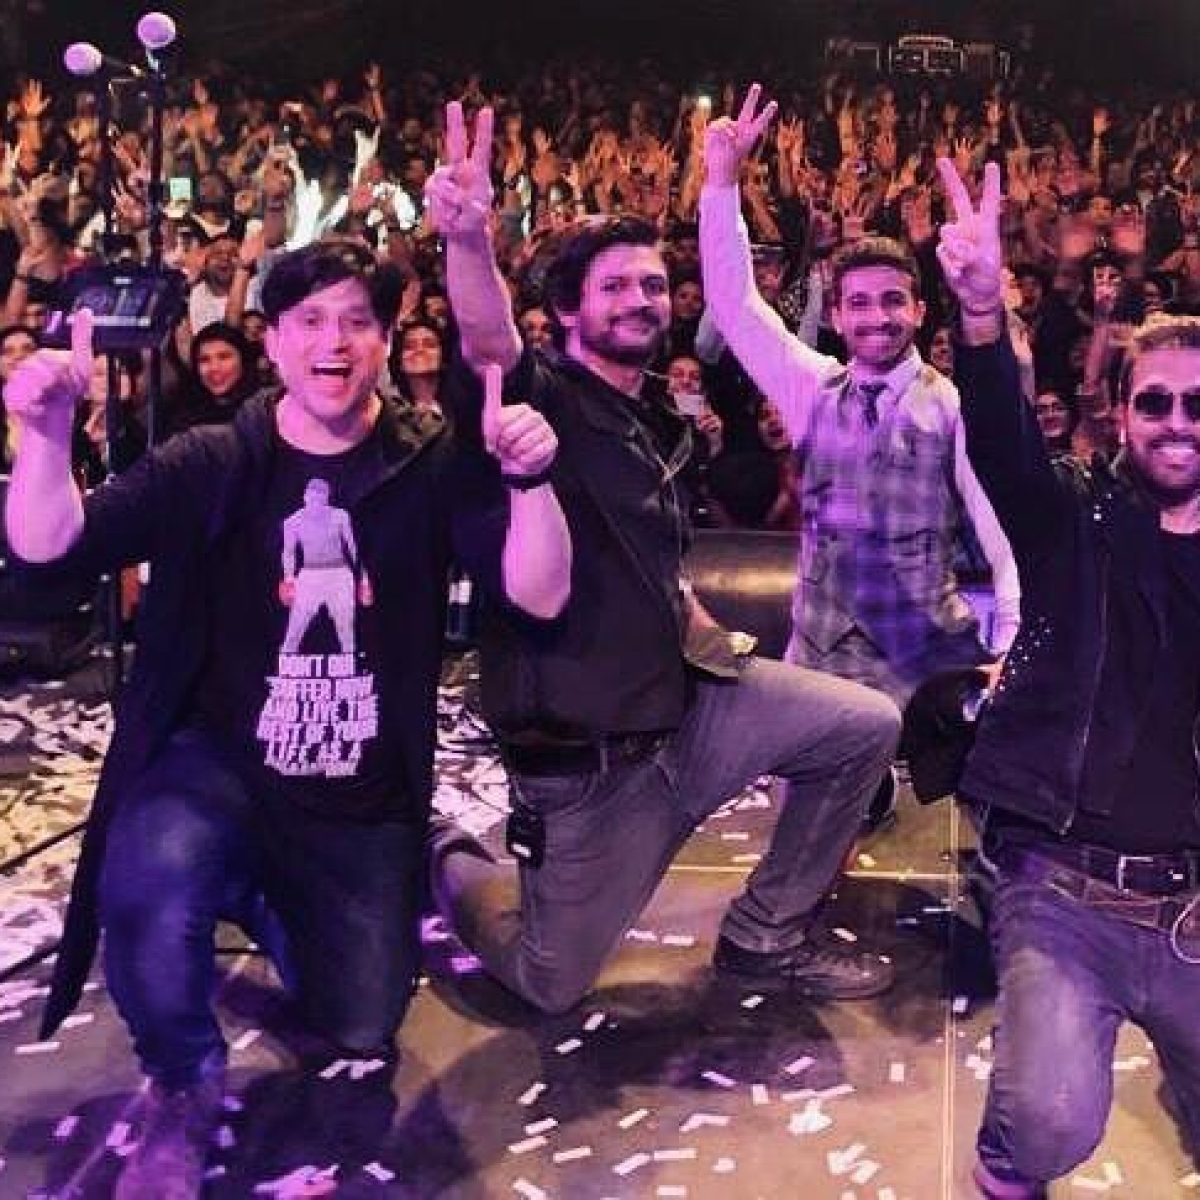 Popular Pakistani rock band Strings breakup after 33 years